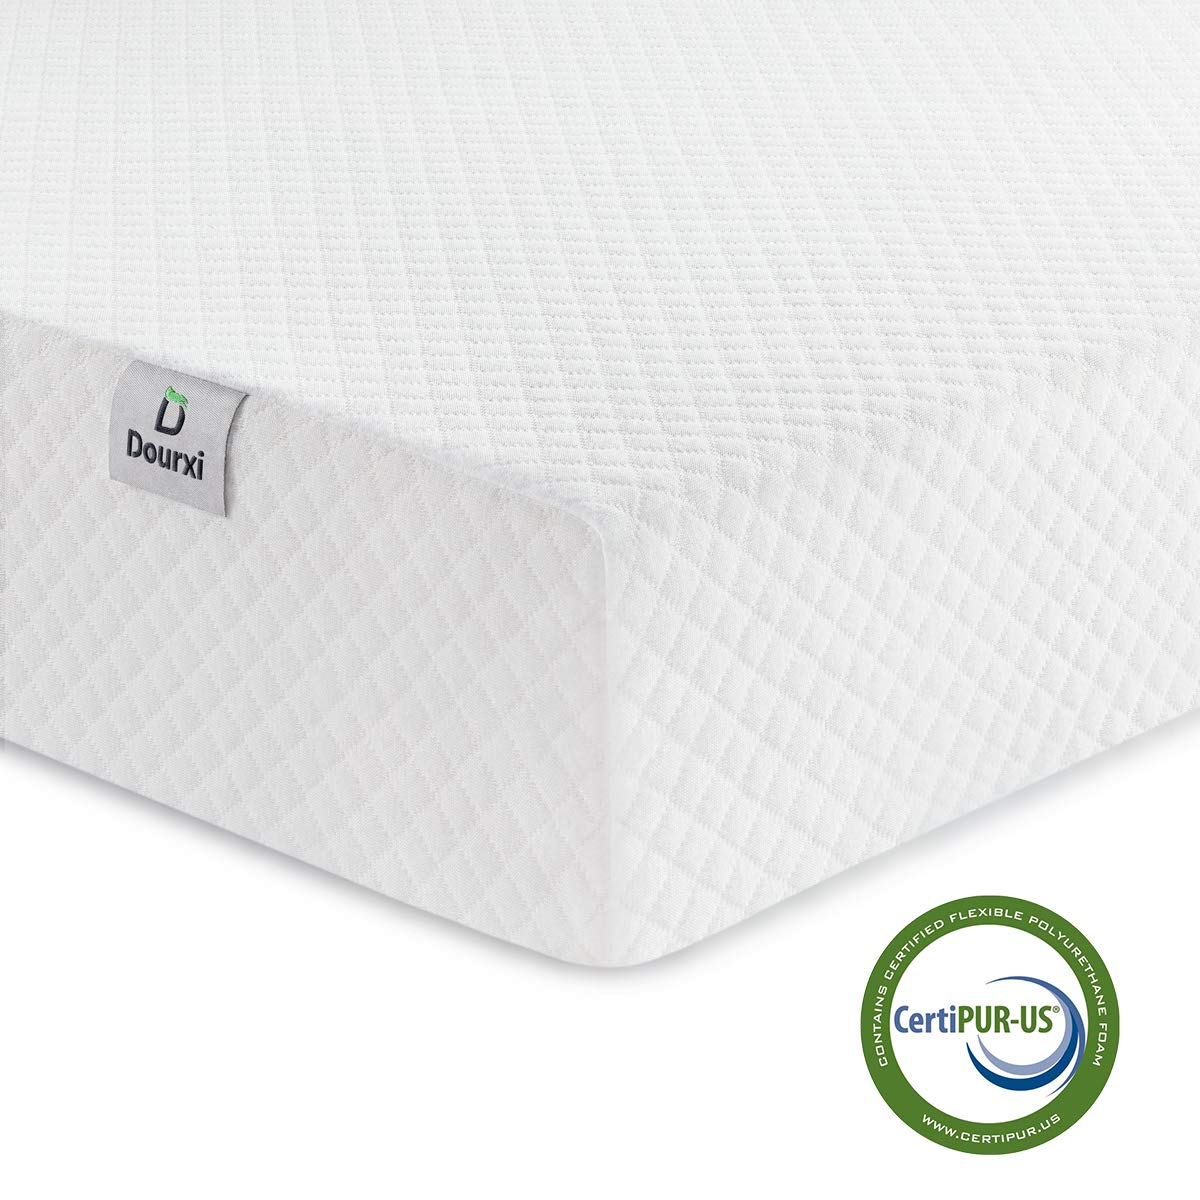 new style 2778f a8ad2 Dourxi Crib Mattress and Toddler Bed Mattress, Dual Sided Sleep System,  Firm Side for Infants and Plush Soft Side for Toddlers, Breathable Foam  Baby ...